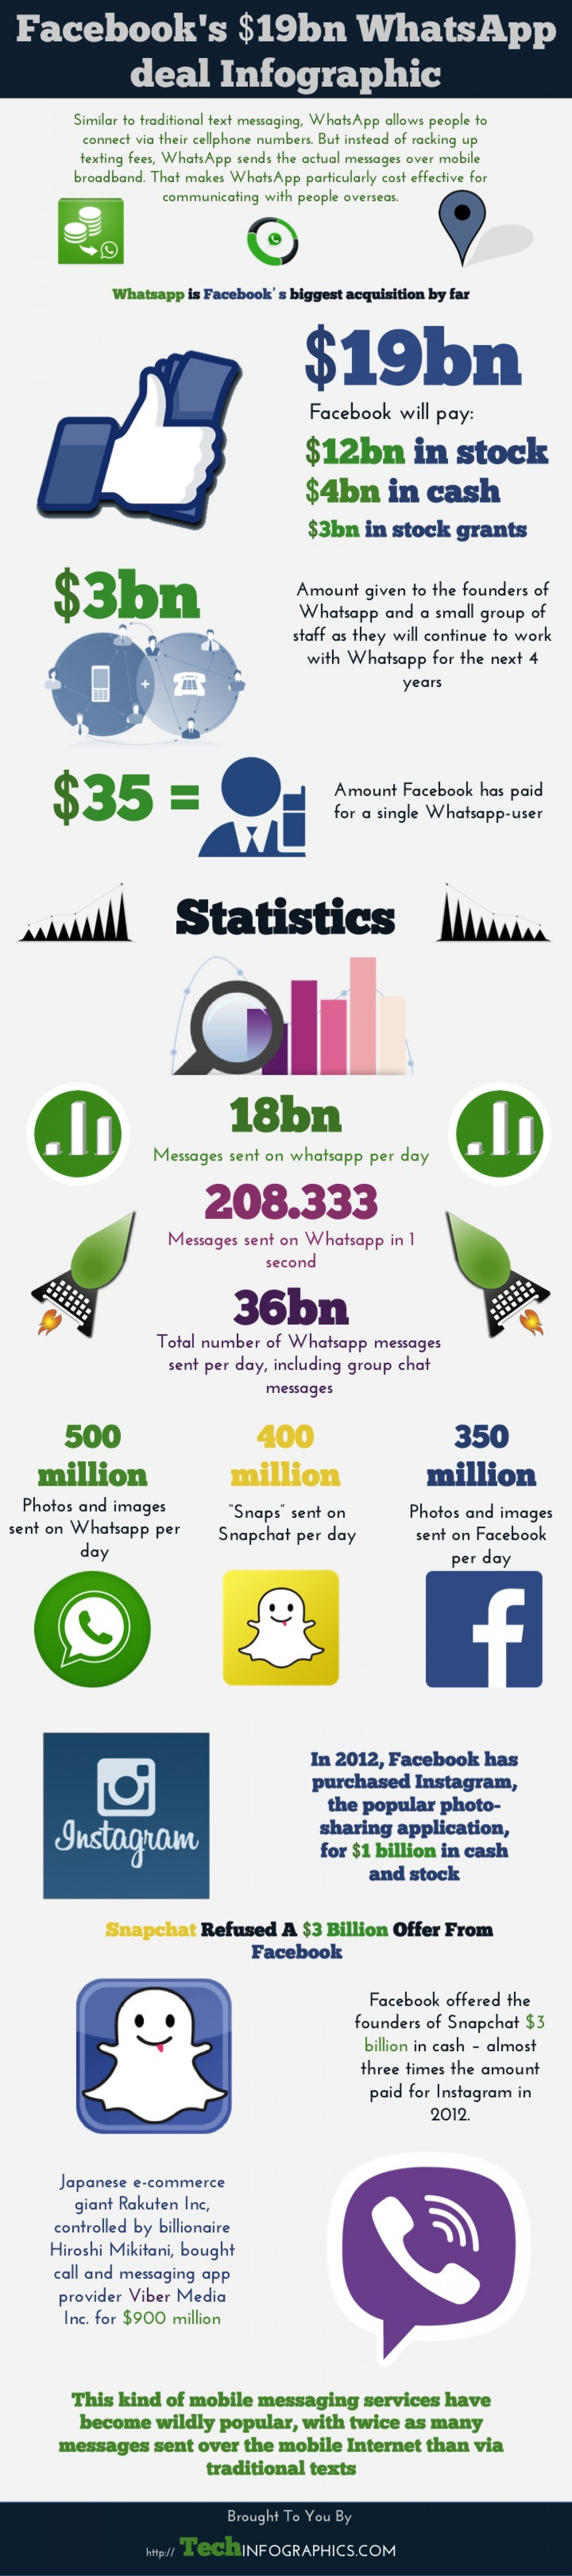 Facebook's $19bn Whatsapp Deal Infographic